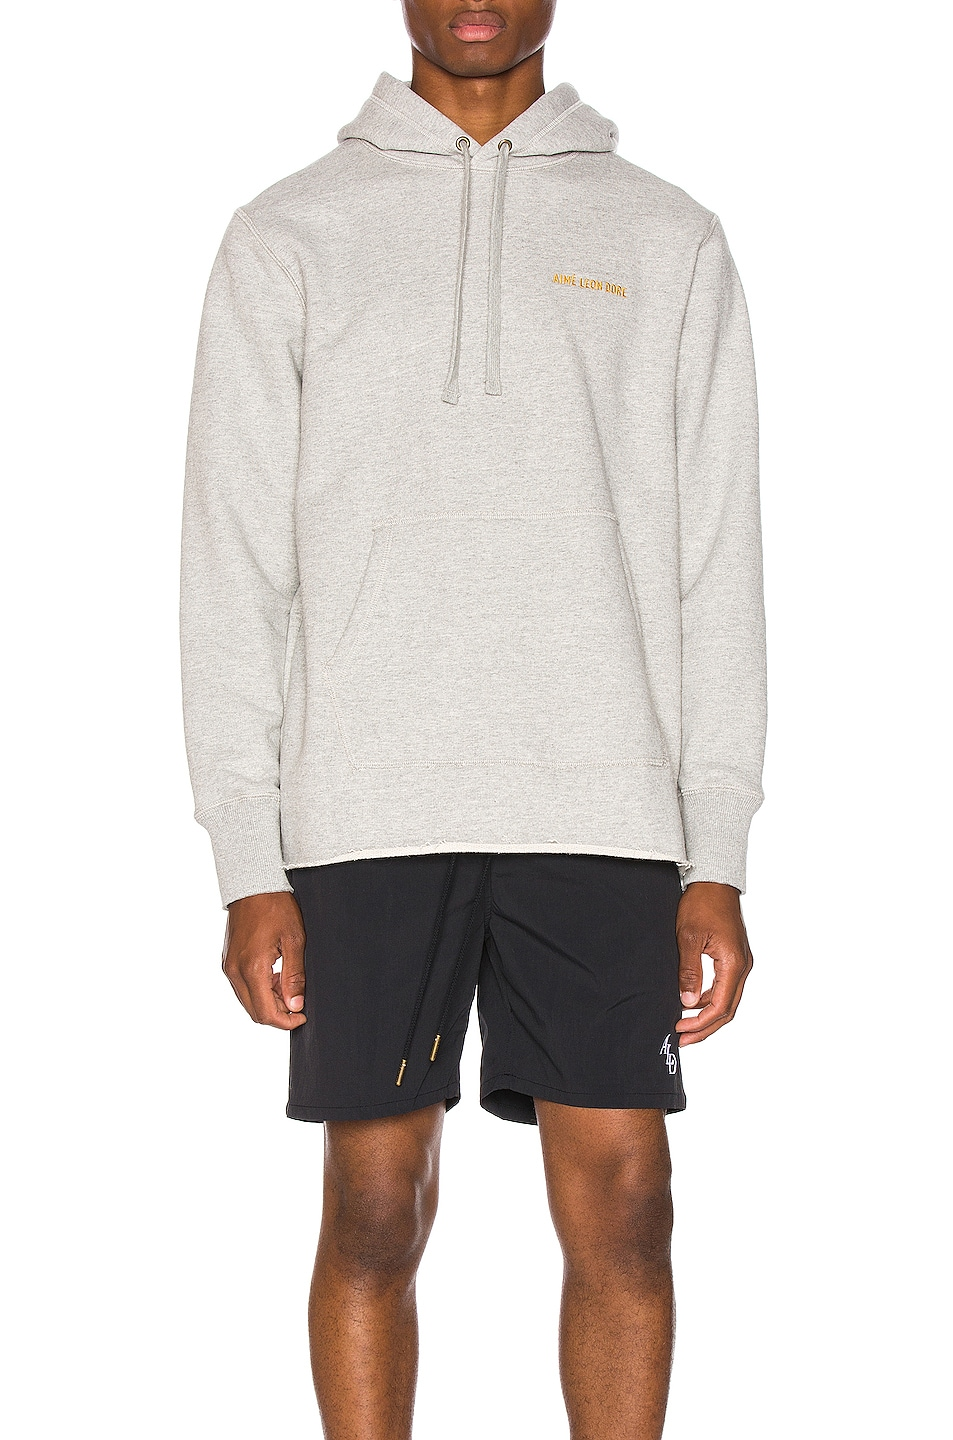 Image 1 of Aime Leon Dore Distressed Hoodie in Heather Grey